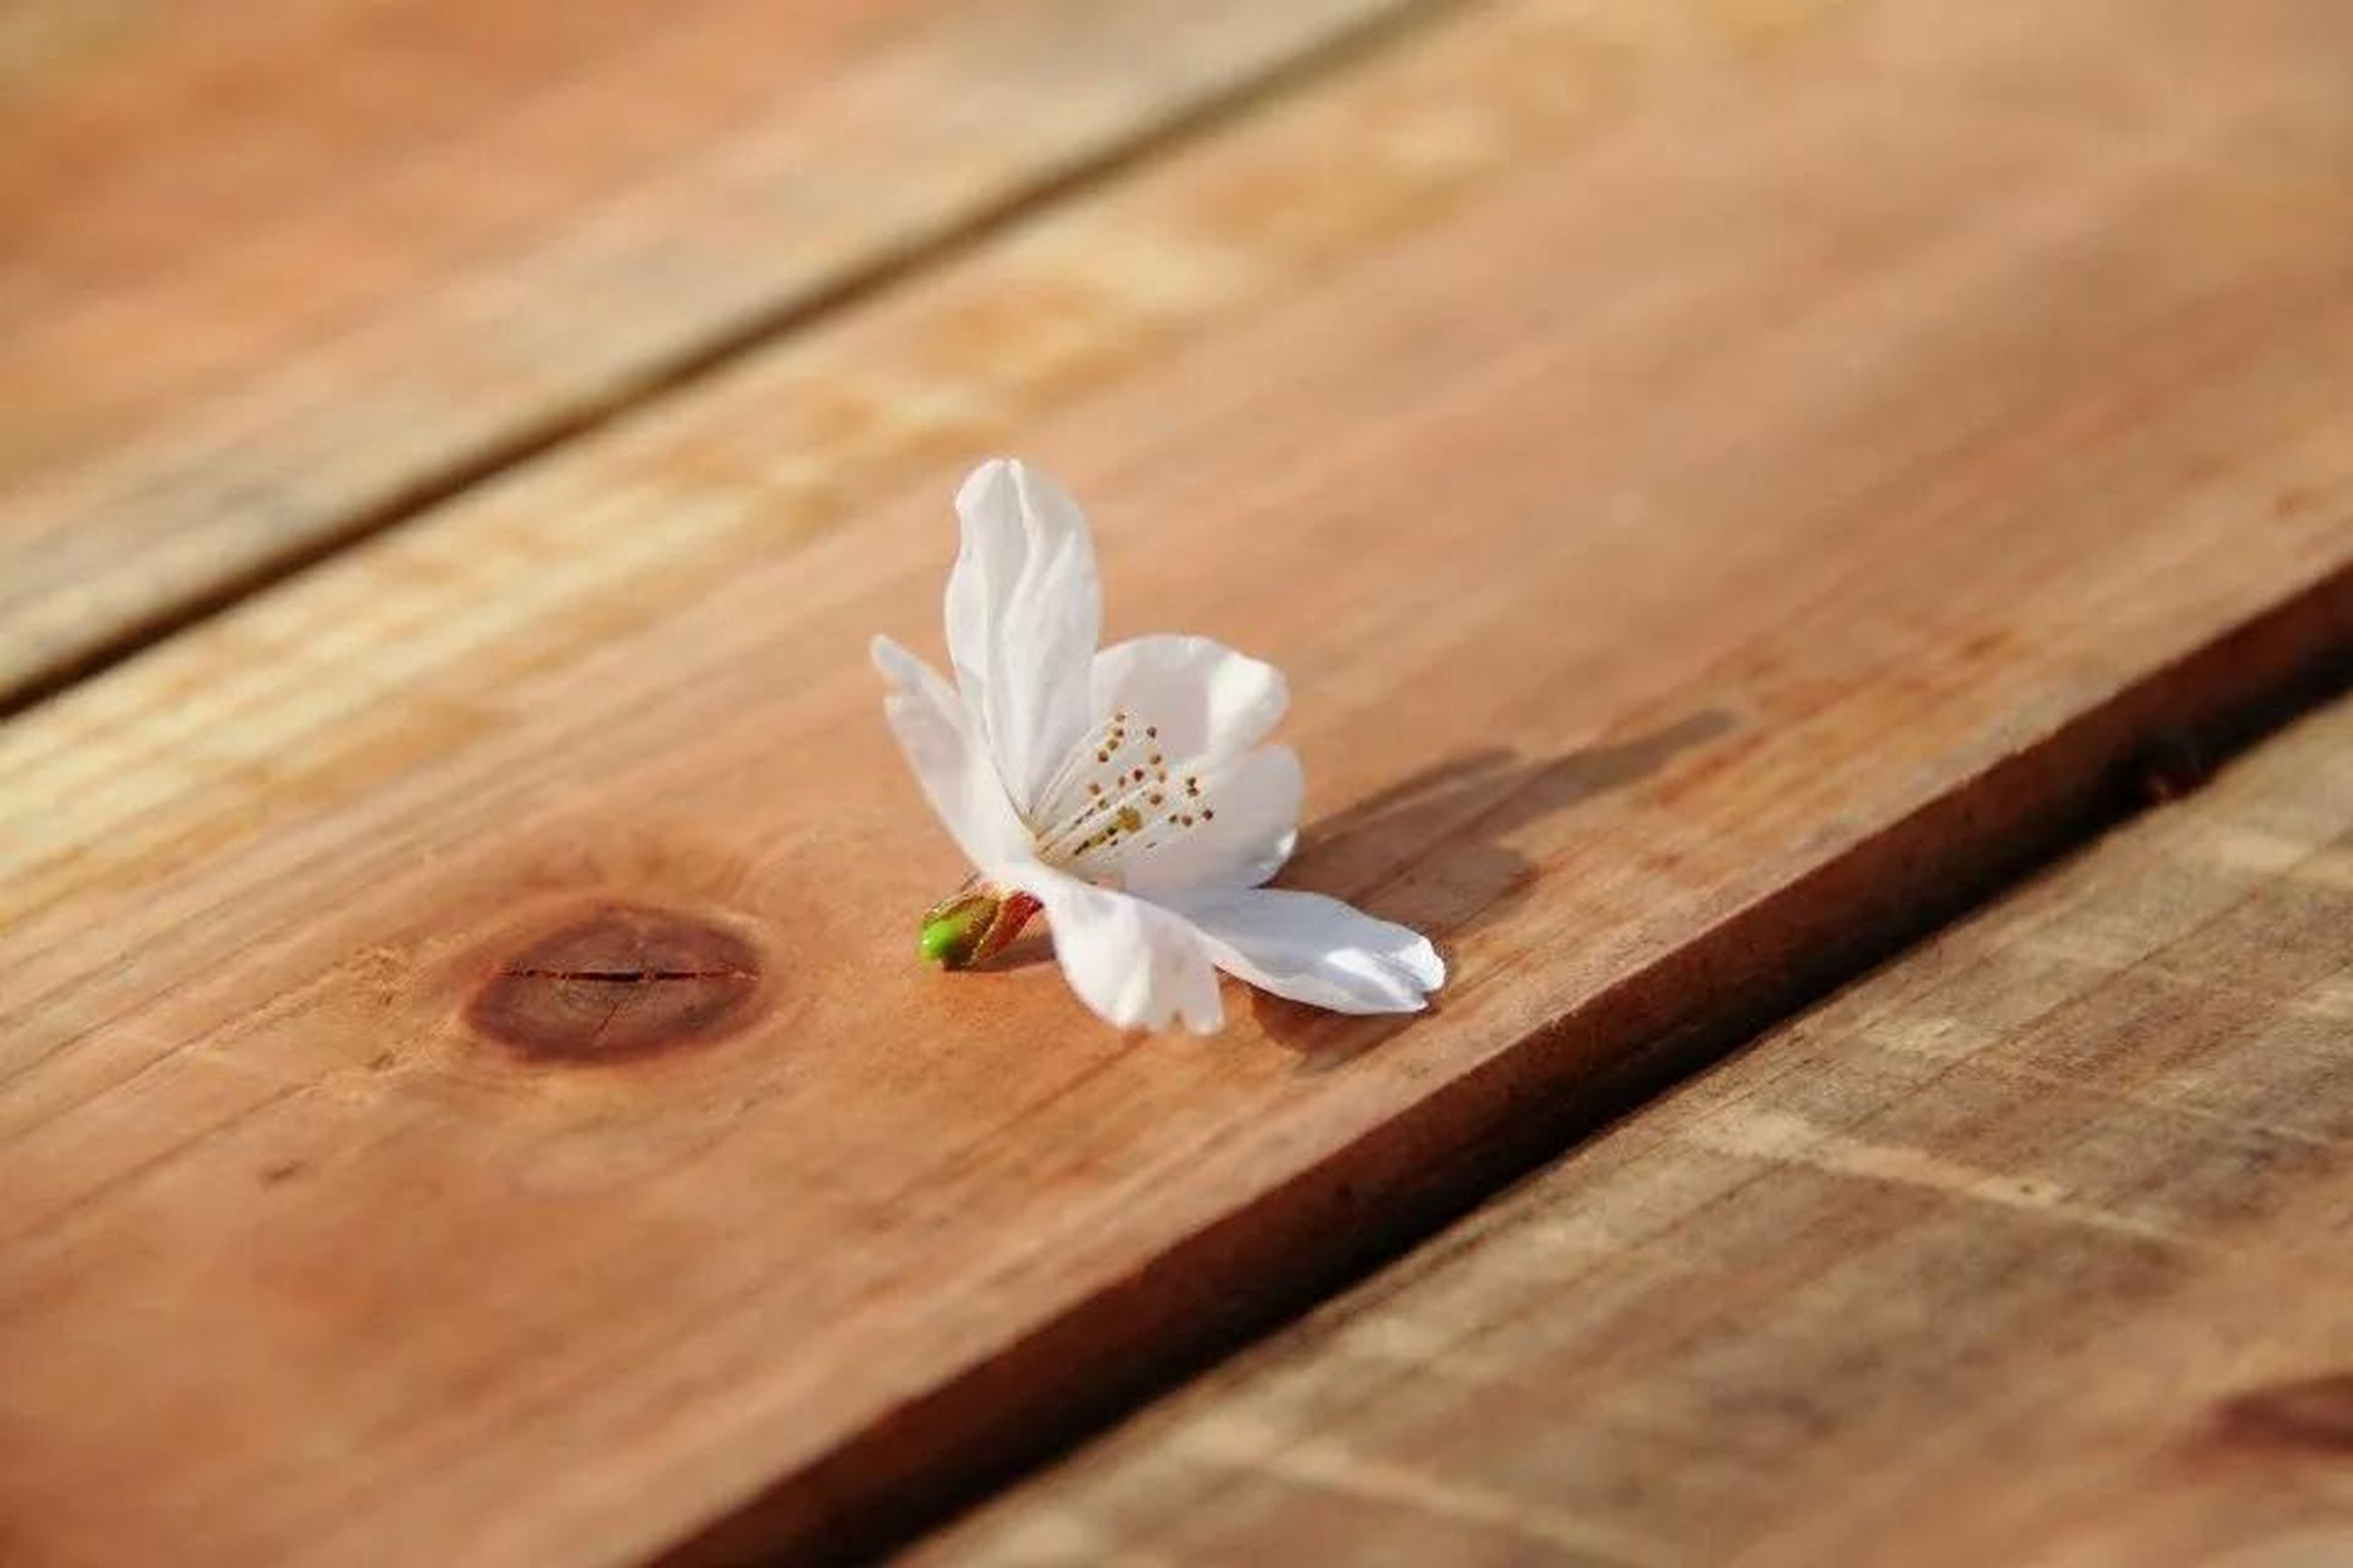 wood - material, flower, wooden, petal, table, white color, freshness, fragility, wood, plank, flower head, close-up, high angle view, indoors, hardwood floor, white, nature, selective focus, beauty in nature, no people